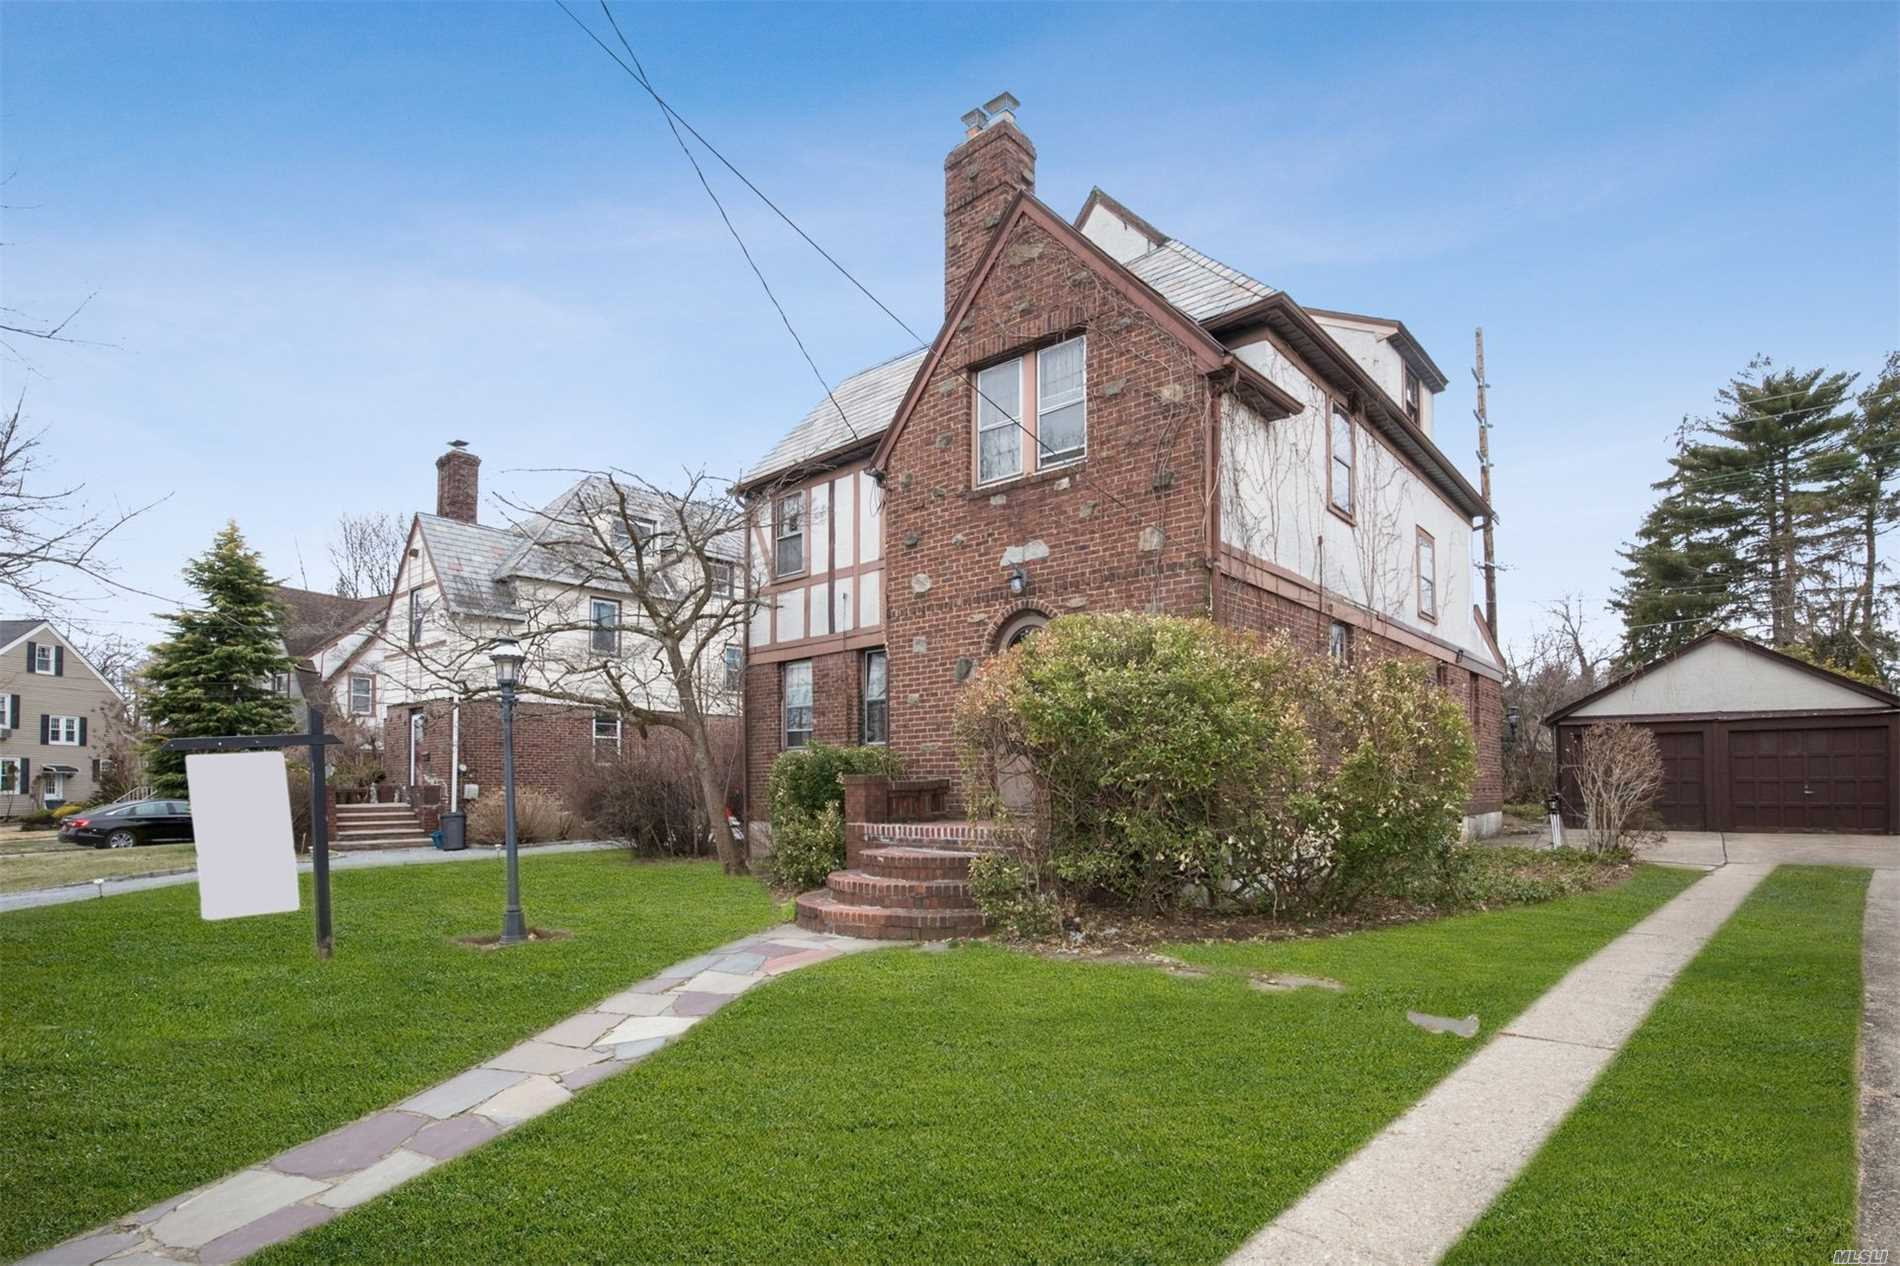 Grand Old Tudor In Need Of Full Face Lift! Handy folks/investors! Hempstead Village, Border W. Hemp/Garden City. Lovely Tree-Lined, Dead-End Street w/other Brick Tudors & Capes That Show Pride Of Ownership. Spacious Layout & Large Rooms! Open Lr, Formal Dr, Large Eik, Wood Floors In Lr/Dr And Bedrooms. Full Size Attic- Tons Of Storage! Newer HW heater & furnace.Near Major Transportation Arteries, Schools, Colleges. Many Possibilities! Don't Miss This Chance To Wake Up This Grand Old Property!